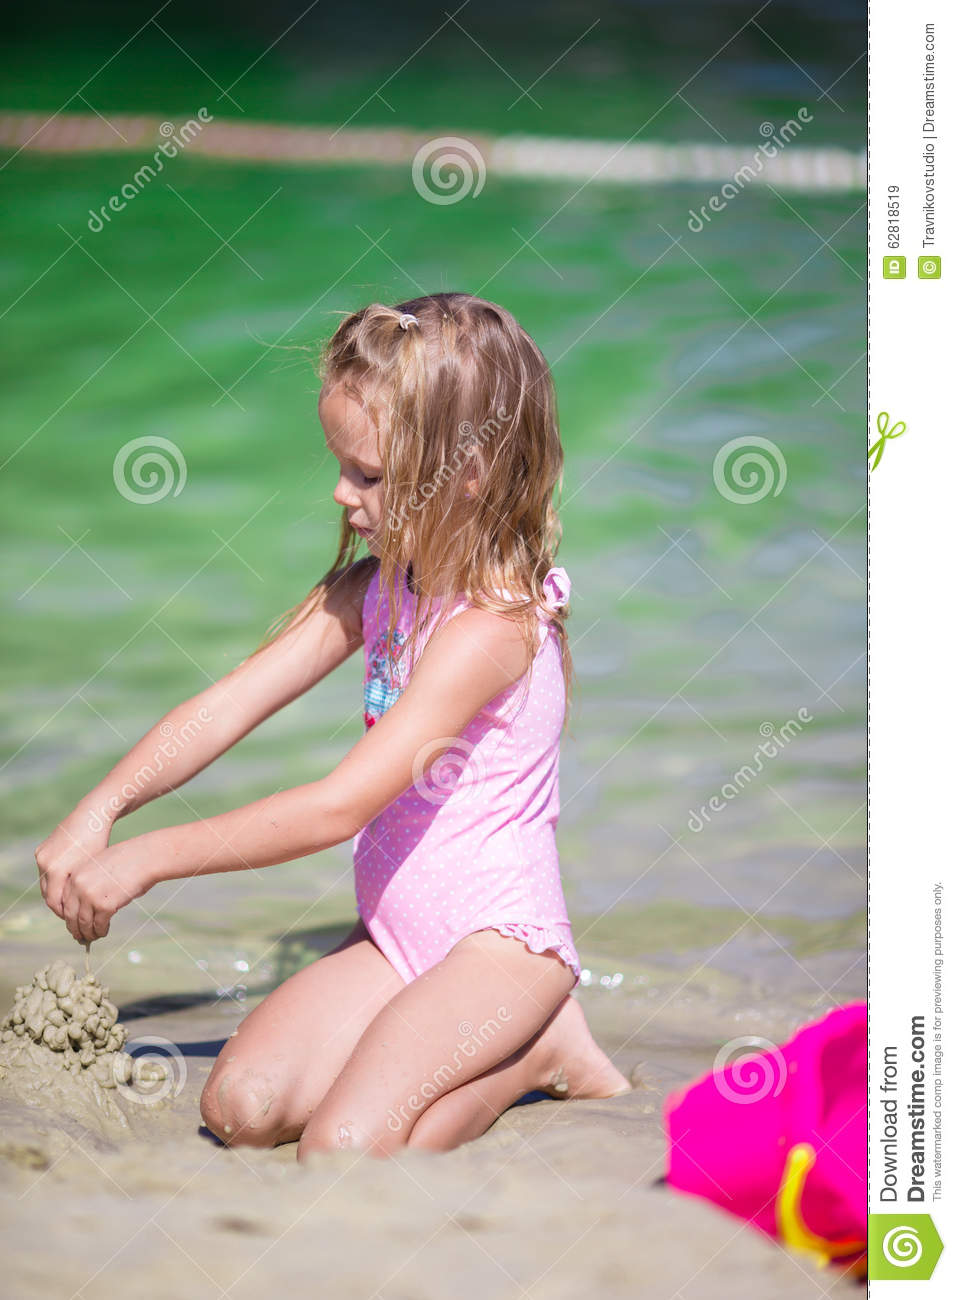 Adorable Little Girl Playing With Beach Toys Stock Photo  Image 62818519